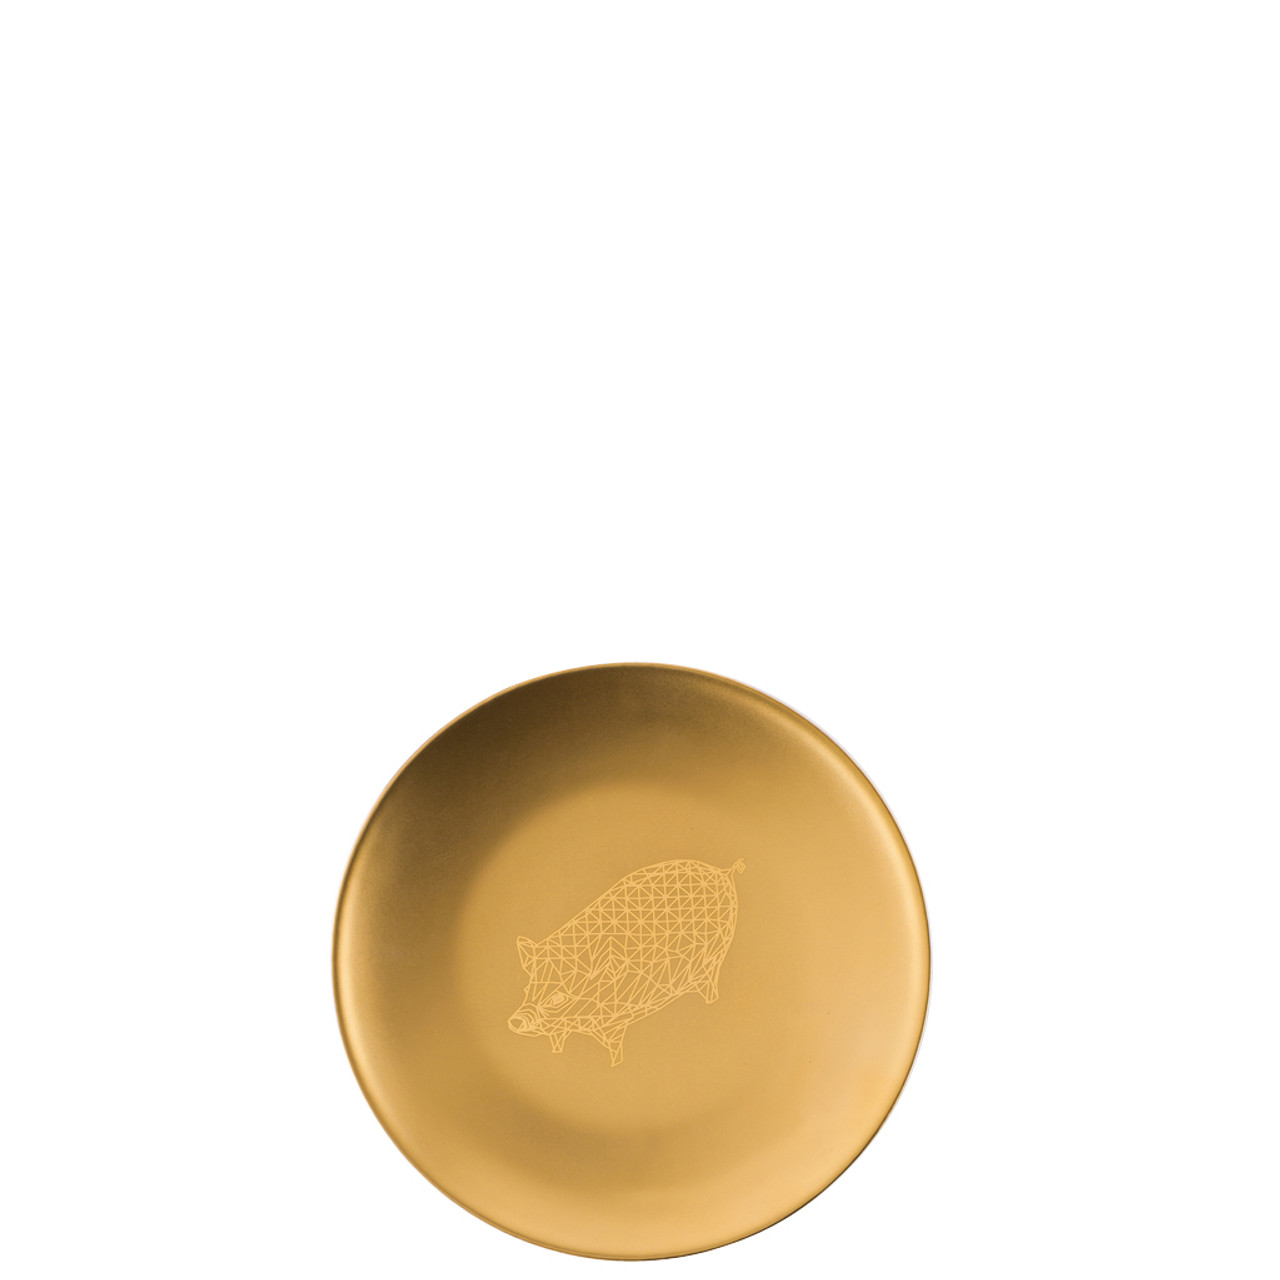 Bread Butter Plate 6 1 4 Inch Tac Palazzo Roro Gold Rosenthal Shop